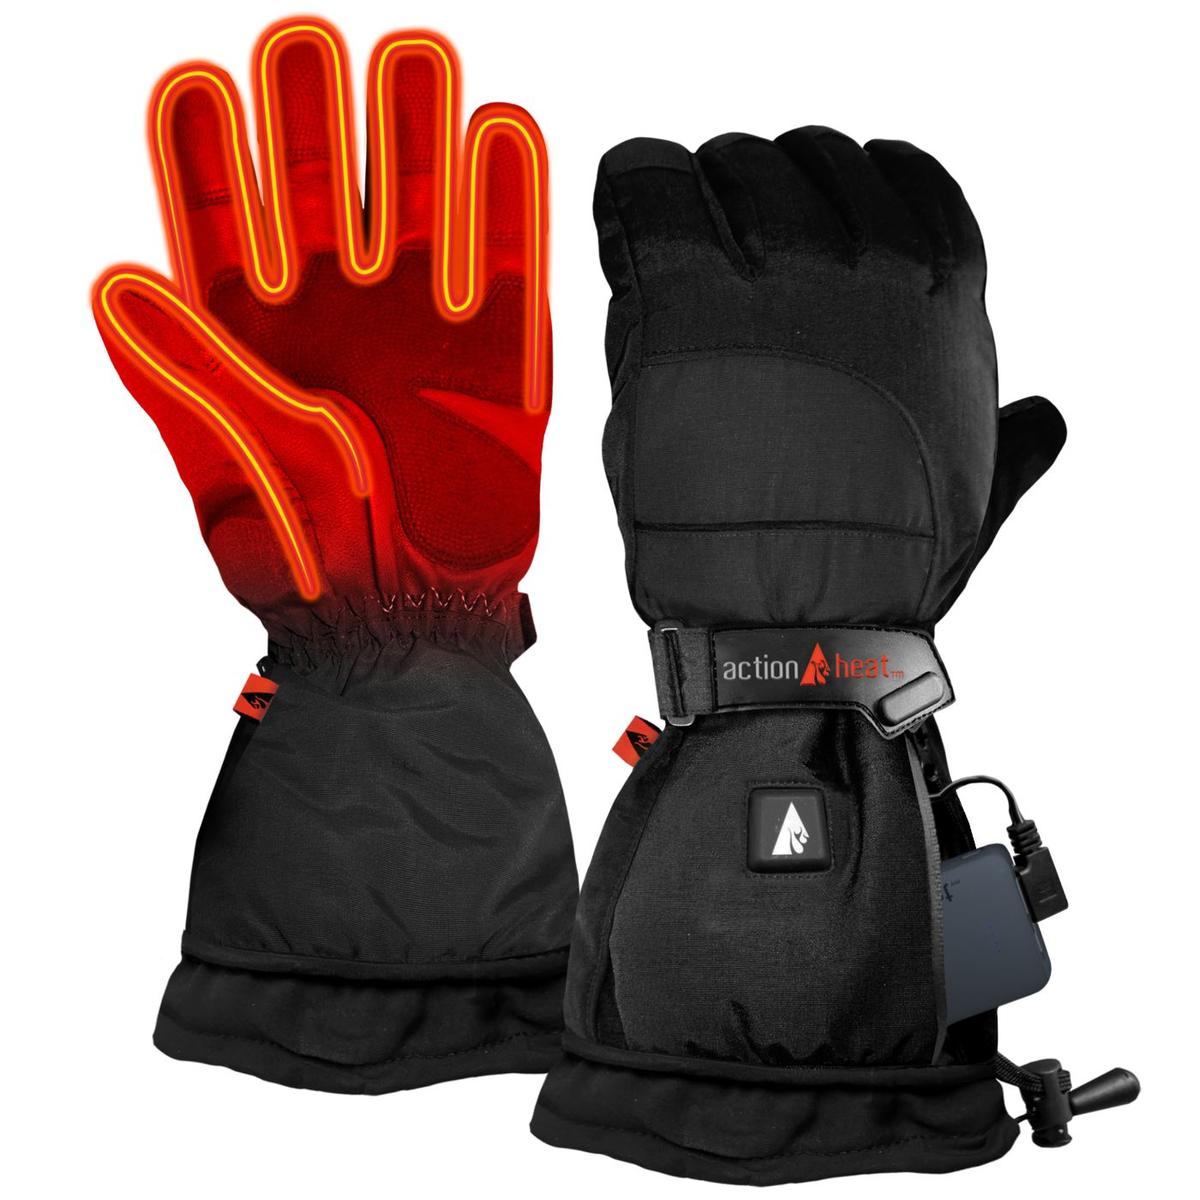 ActionHeat 5V Battery Heated Snow Gloves - Women's - Back